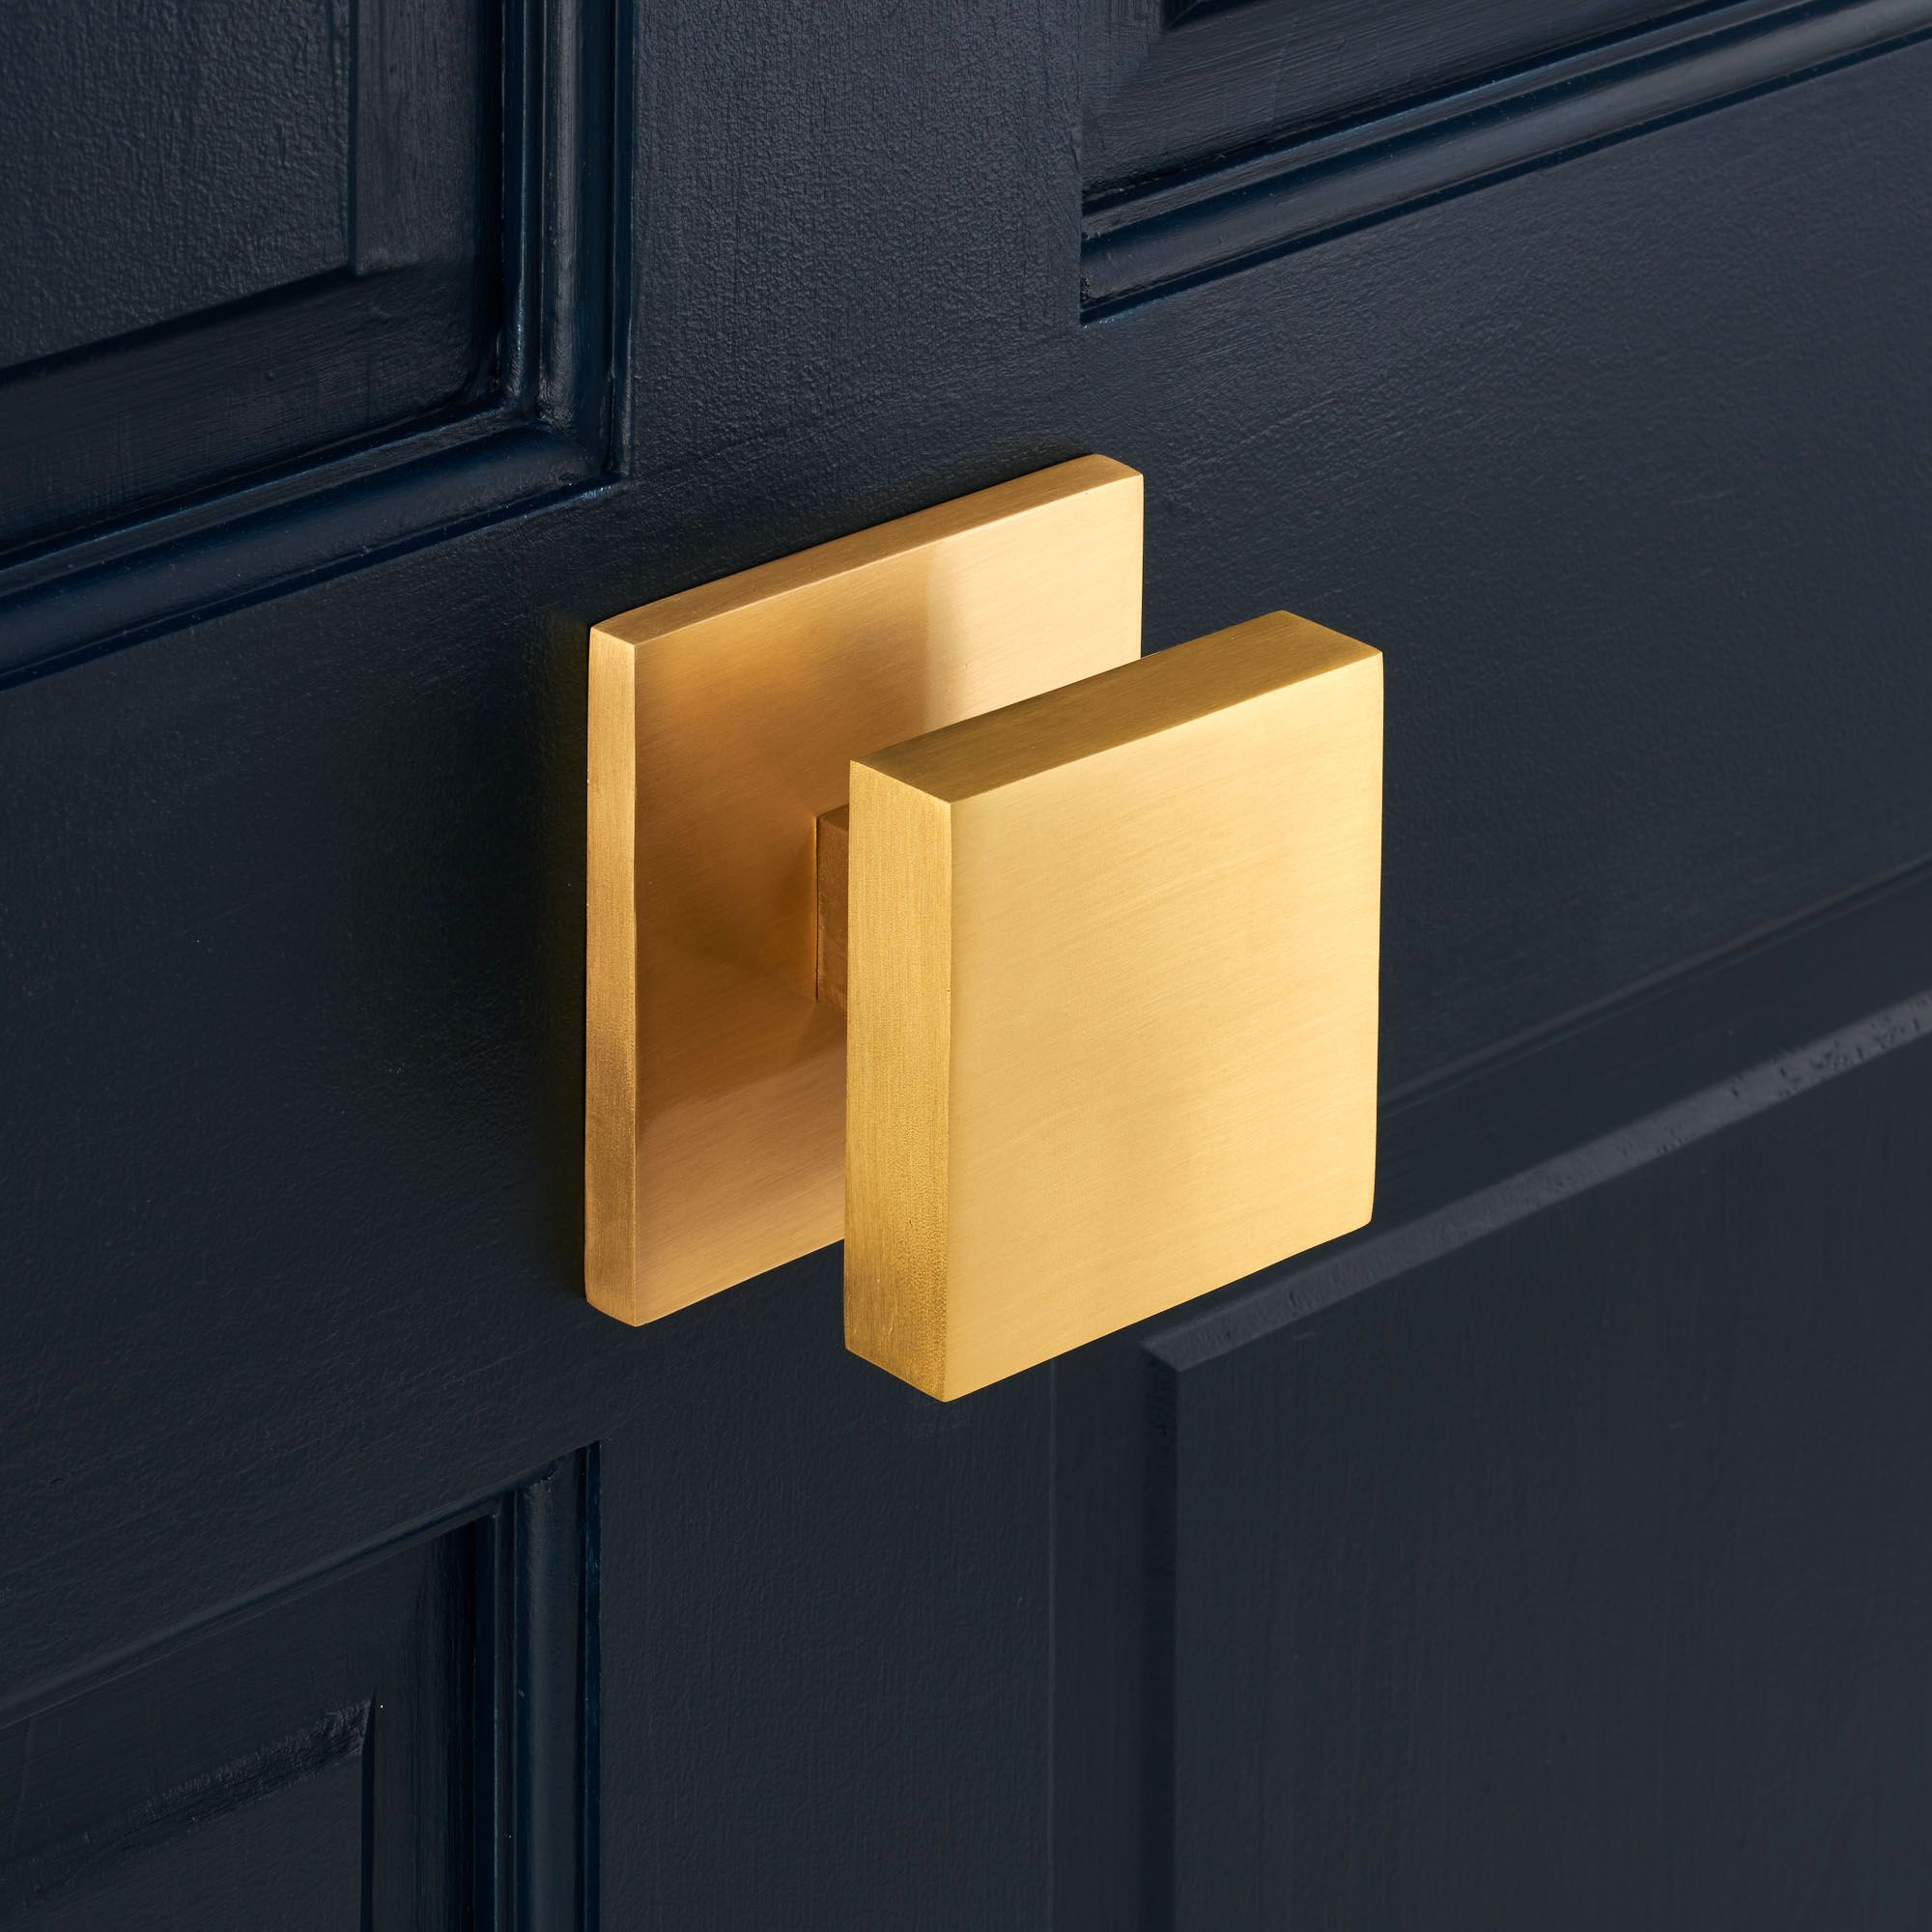 Solid Brass Gold Square Centre Door Knob With Brushed Finish With A  Protective Lacquer Coating For